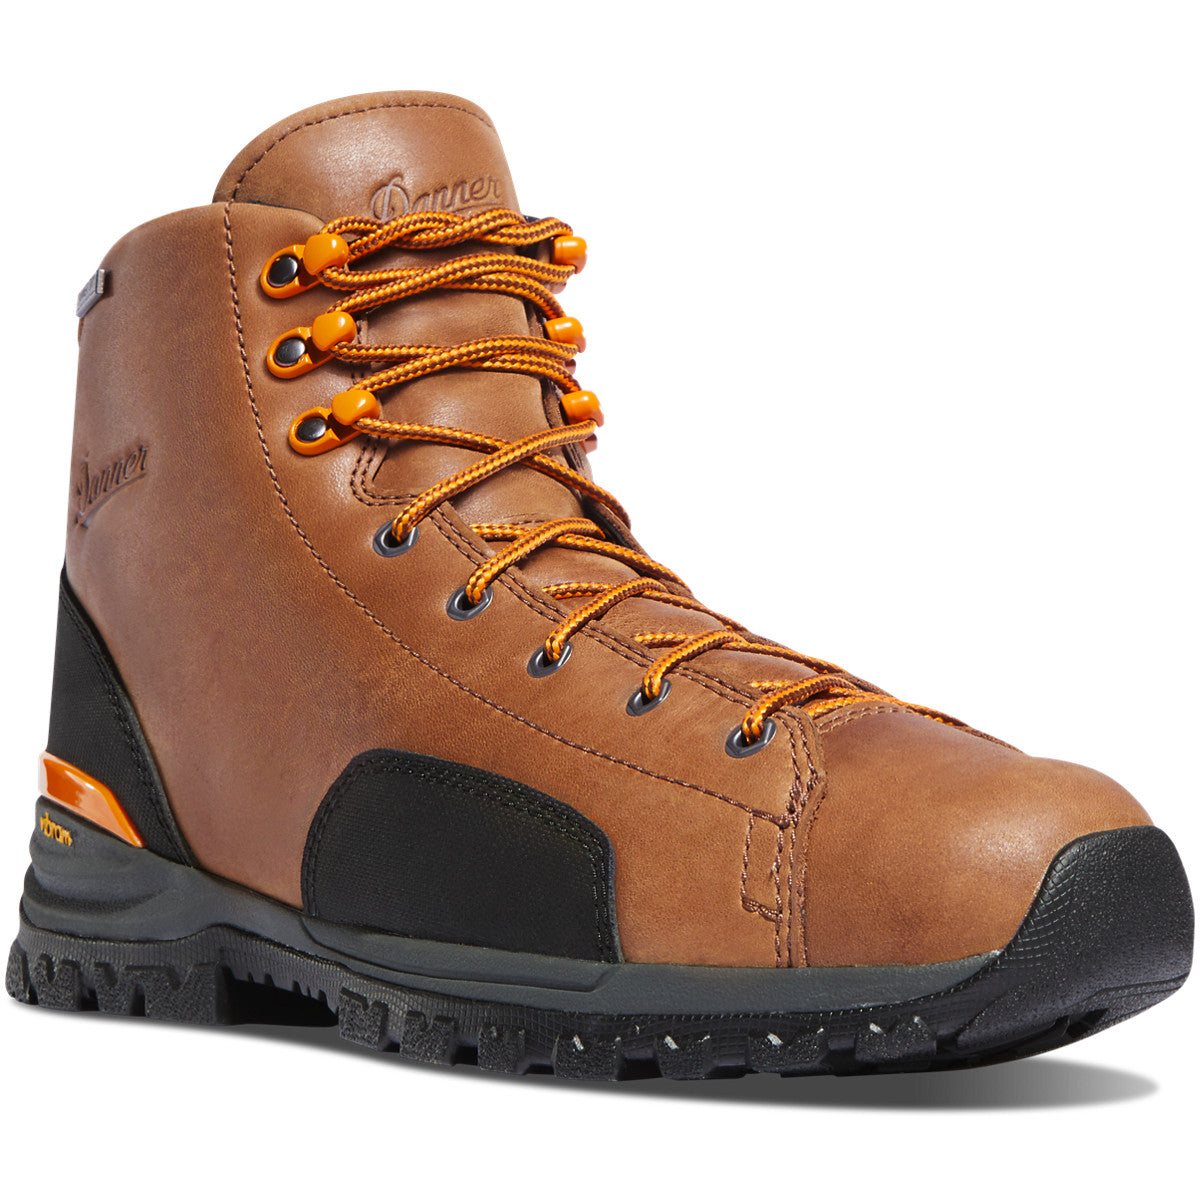 "Danner Men's Stronghold 6"" Waterproof Non-Metal Toe Work Boot in Brown from the side"